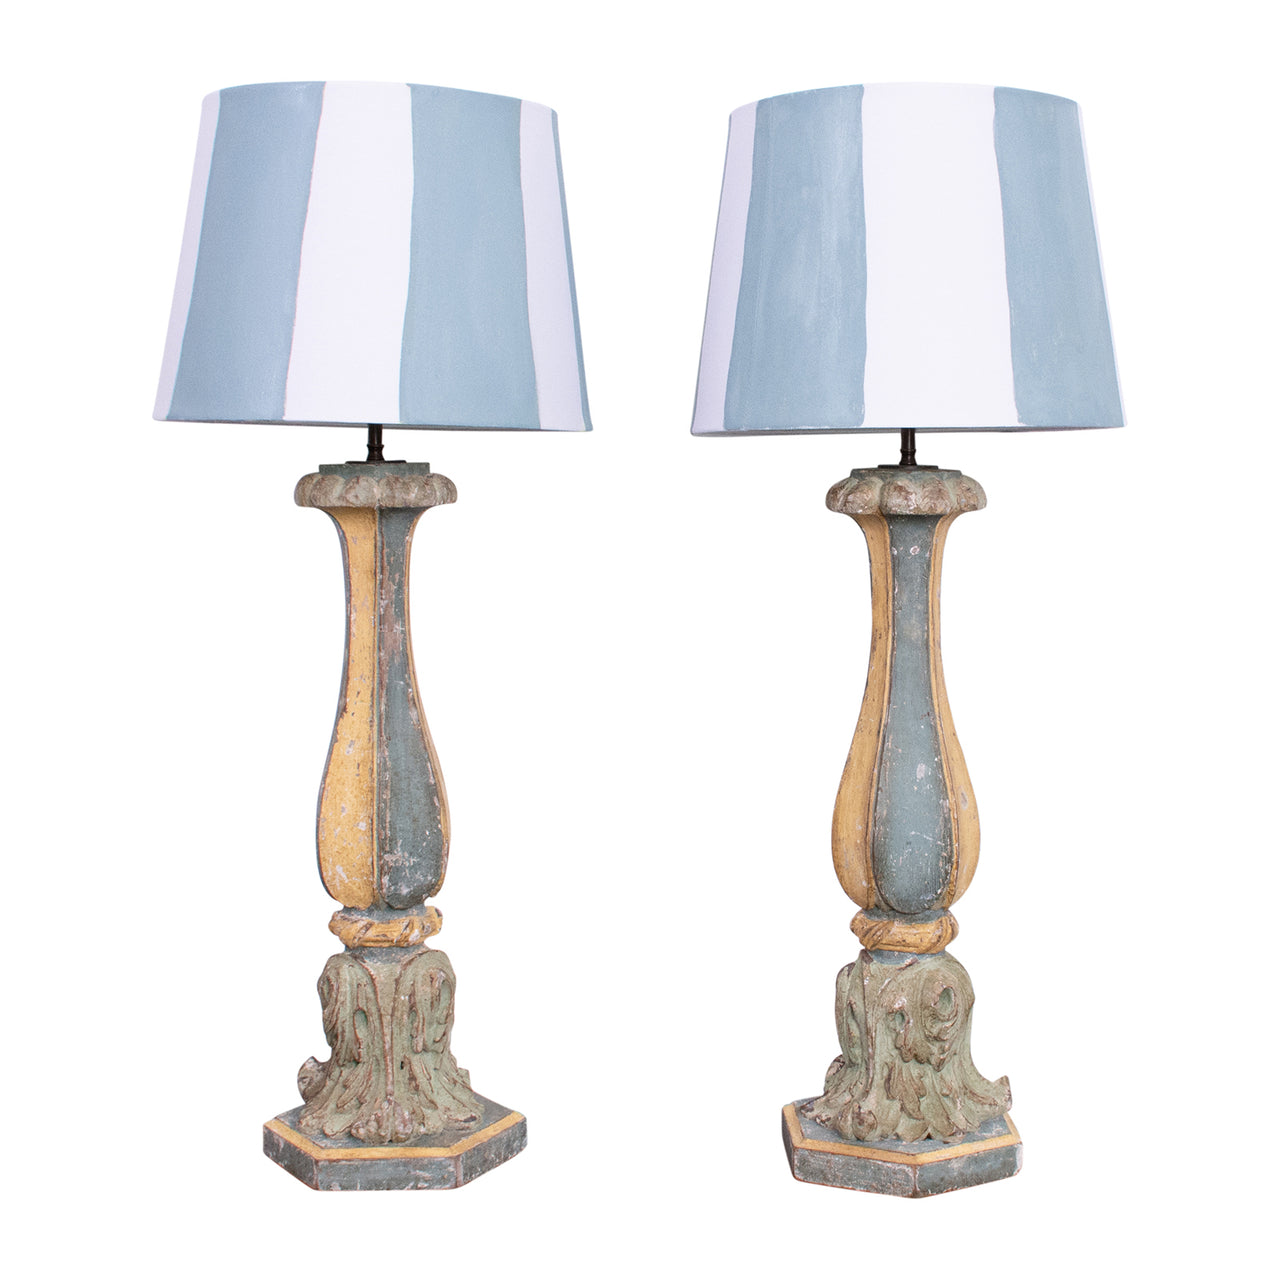 Pair of Striped Neo-Classical Lamps